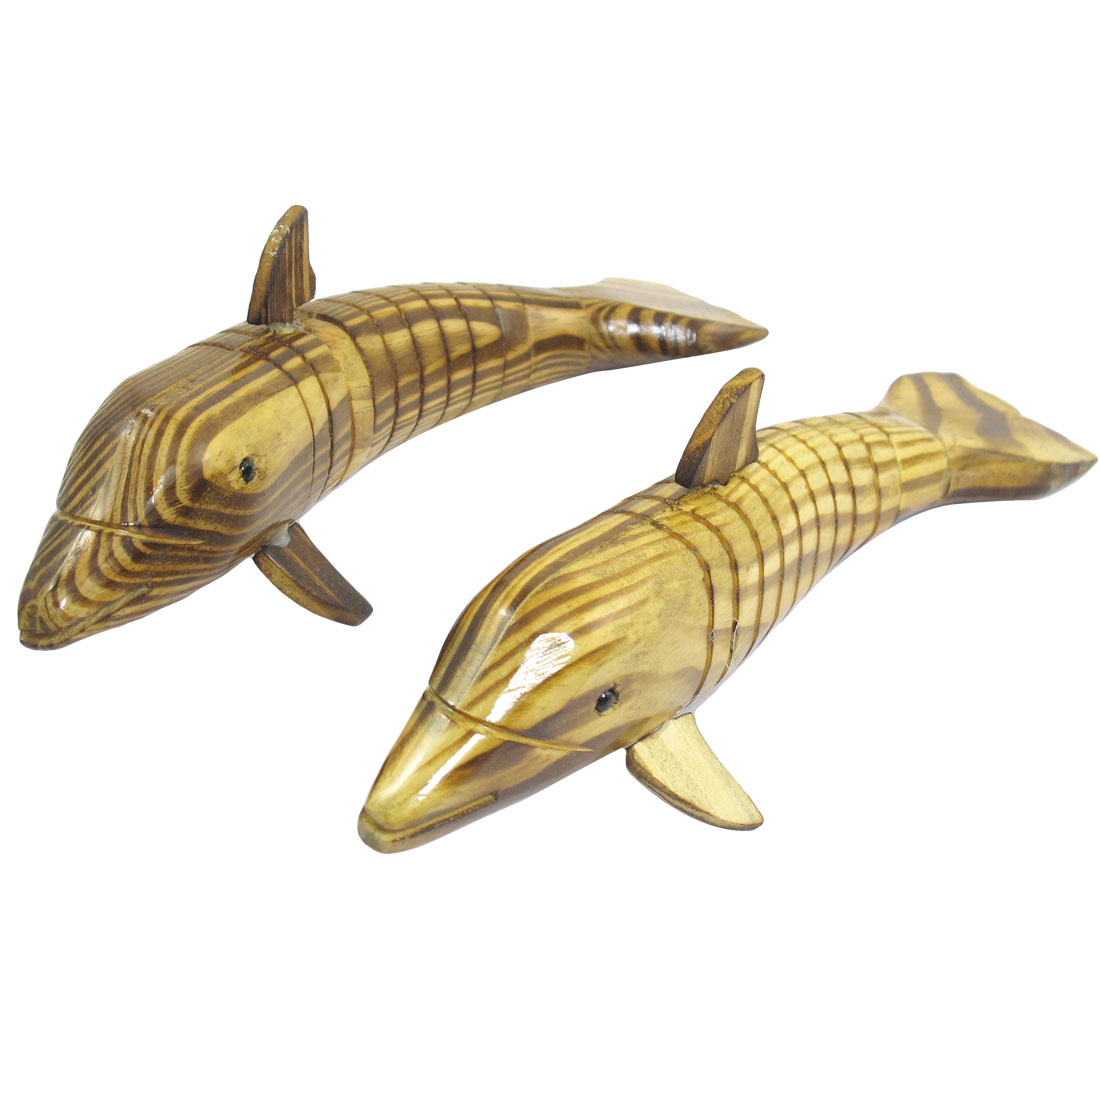 2 Pcs Simulated Flexible Body Wood Wooden Dolphin Toy for Children